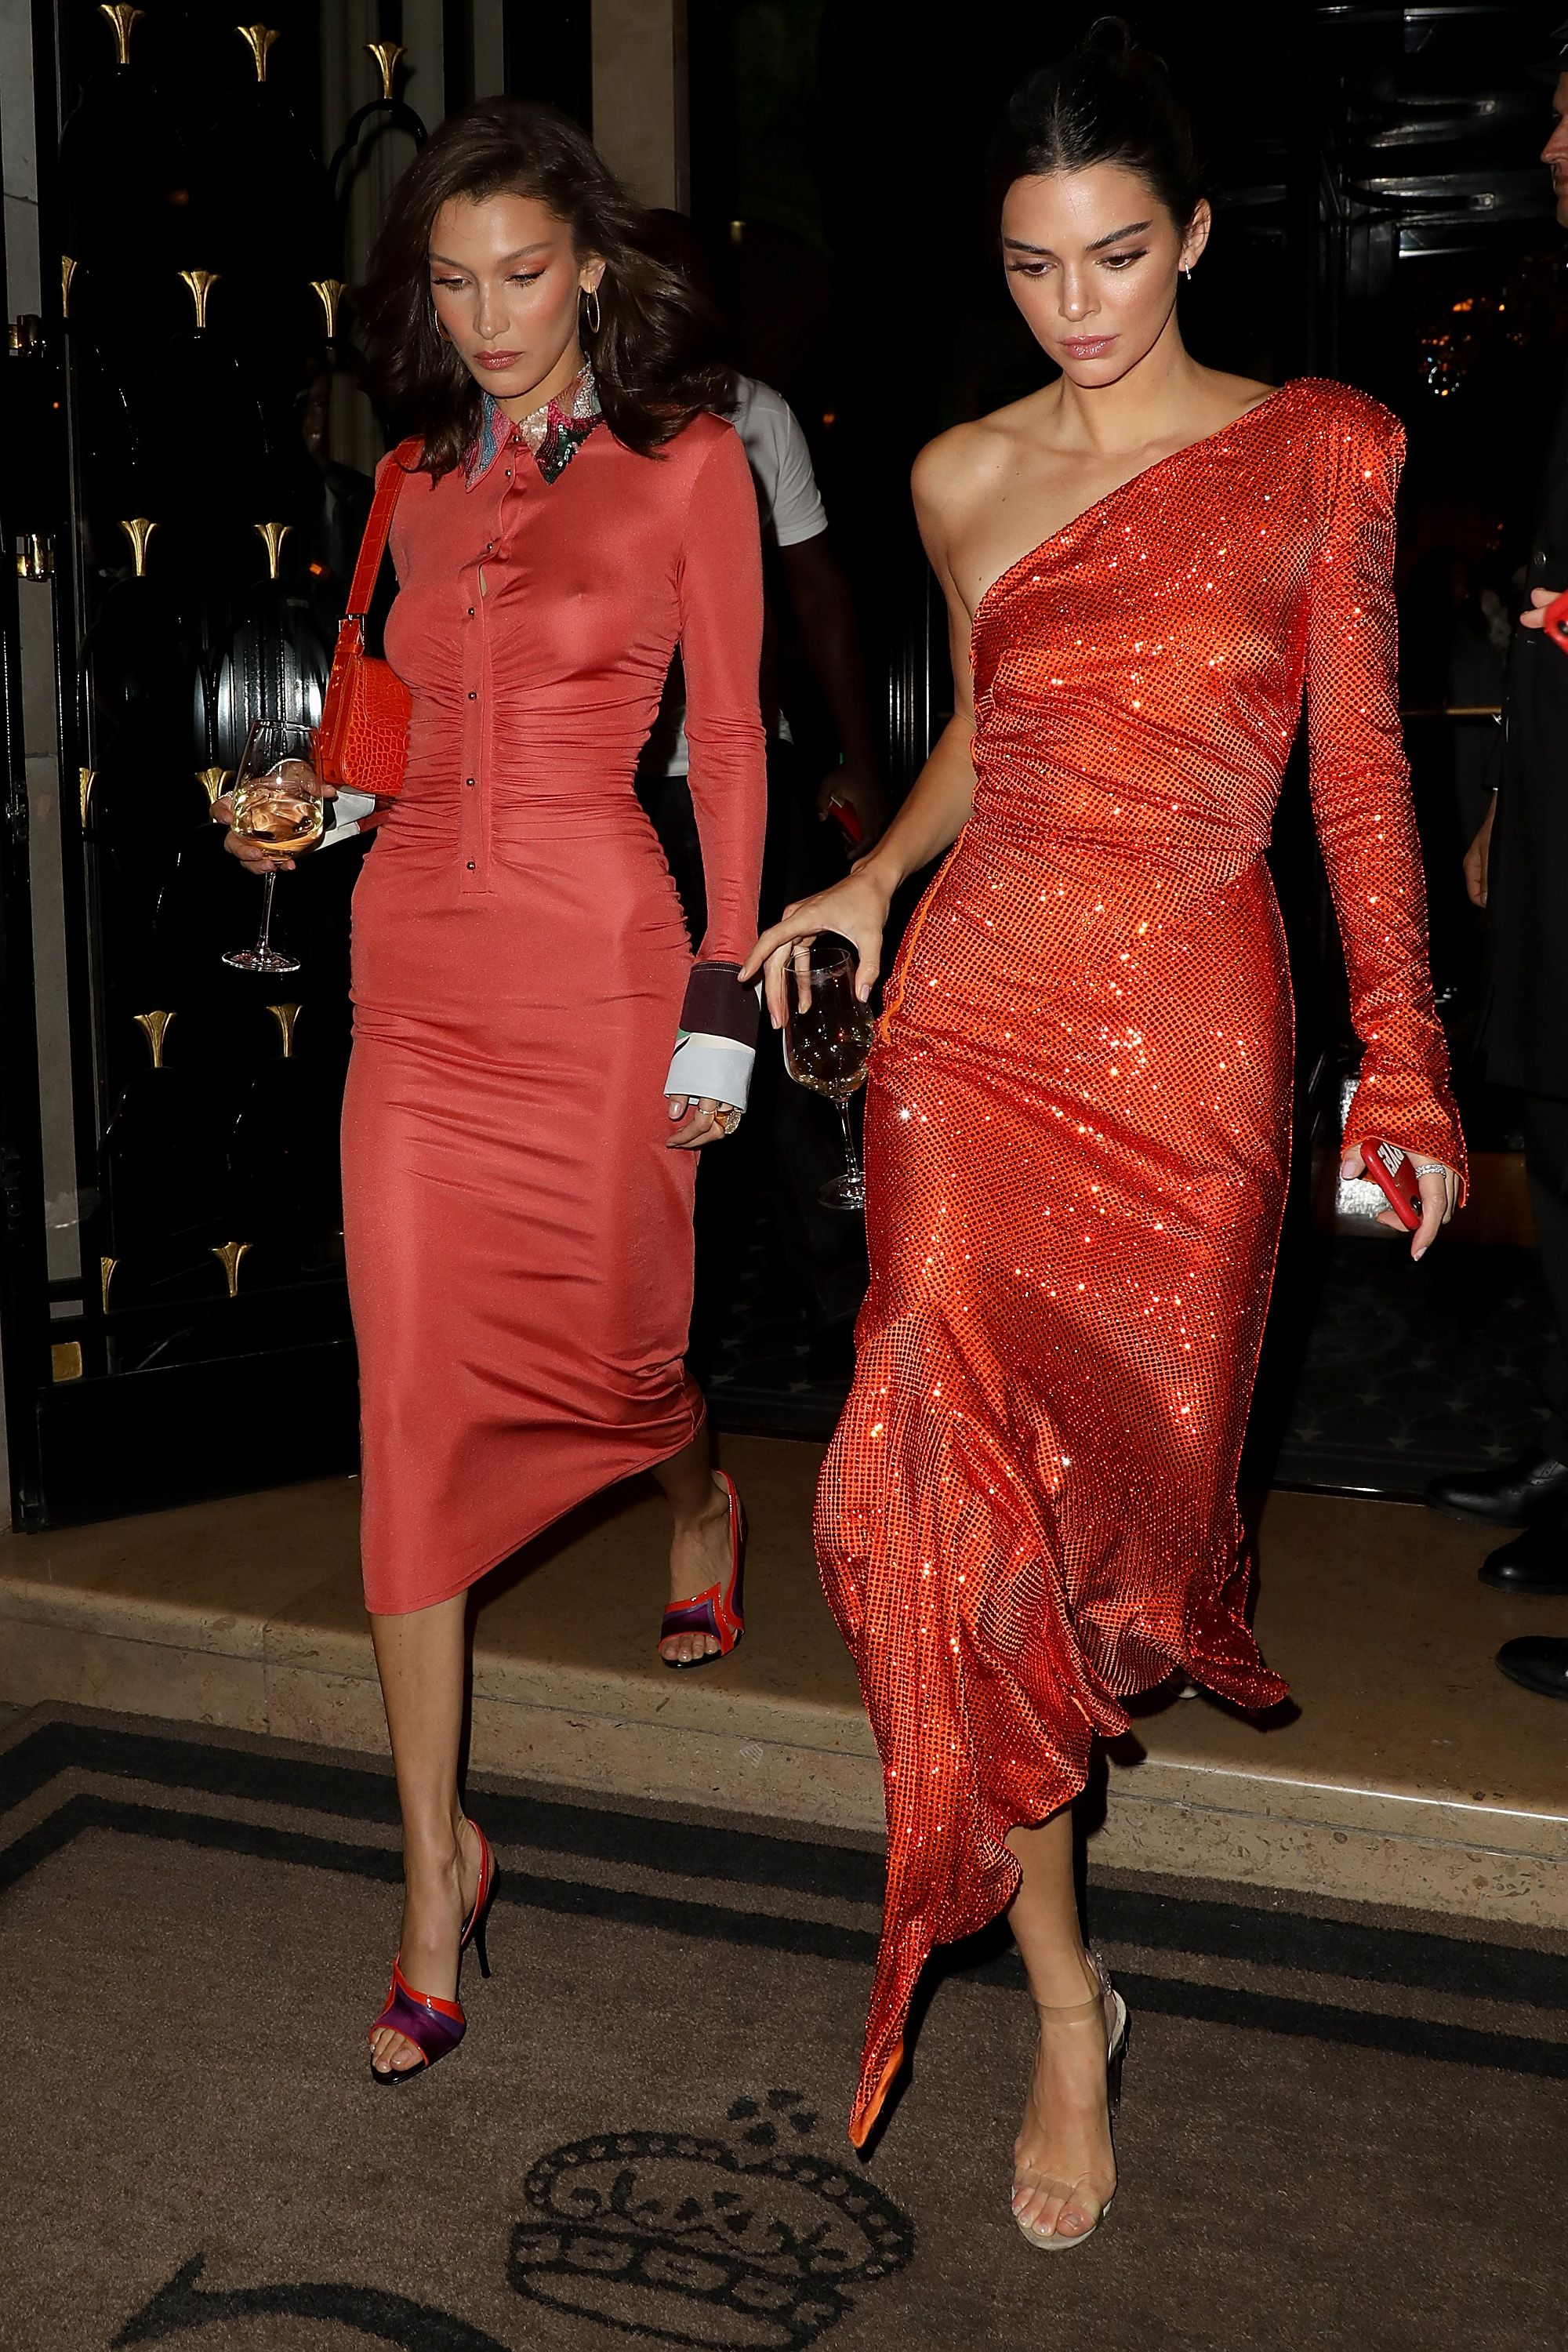 September 26, 2018 Kendall and Bella attended the YouTube cocktail party in Paris hand in hand while wearing dresses in similar red hues. Bella opted for long sleeves and a mini length while Kendall chose a one-shoulder sparkly number.